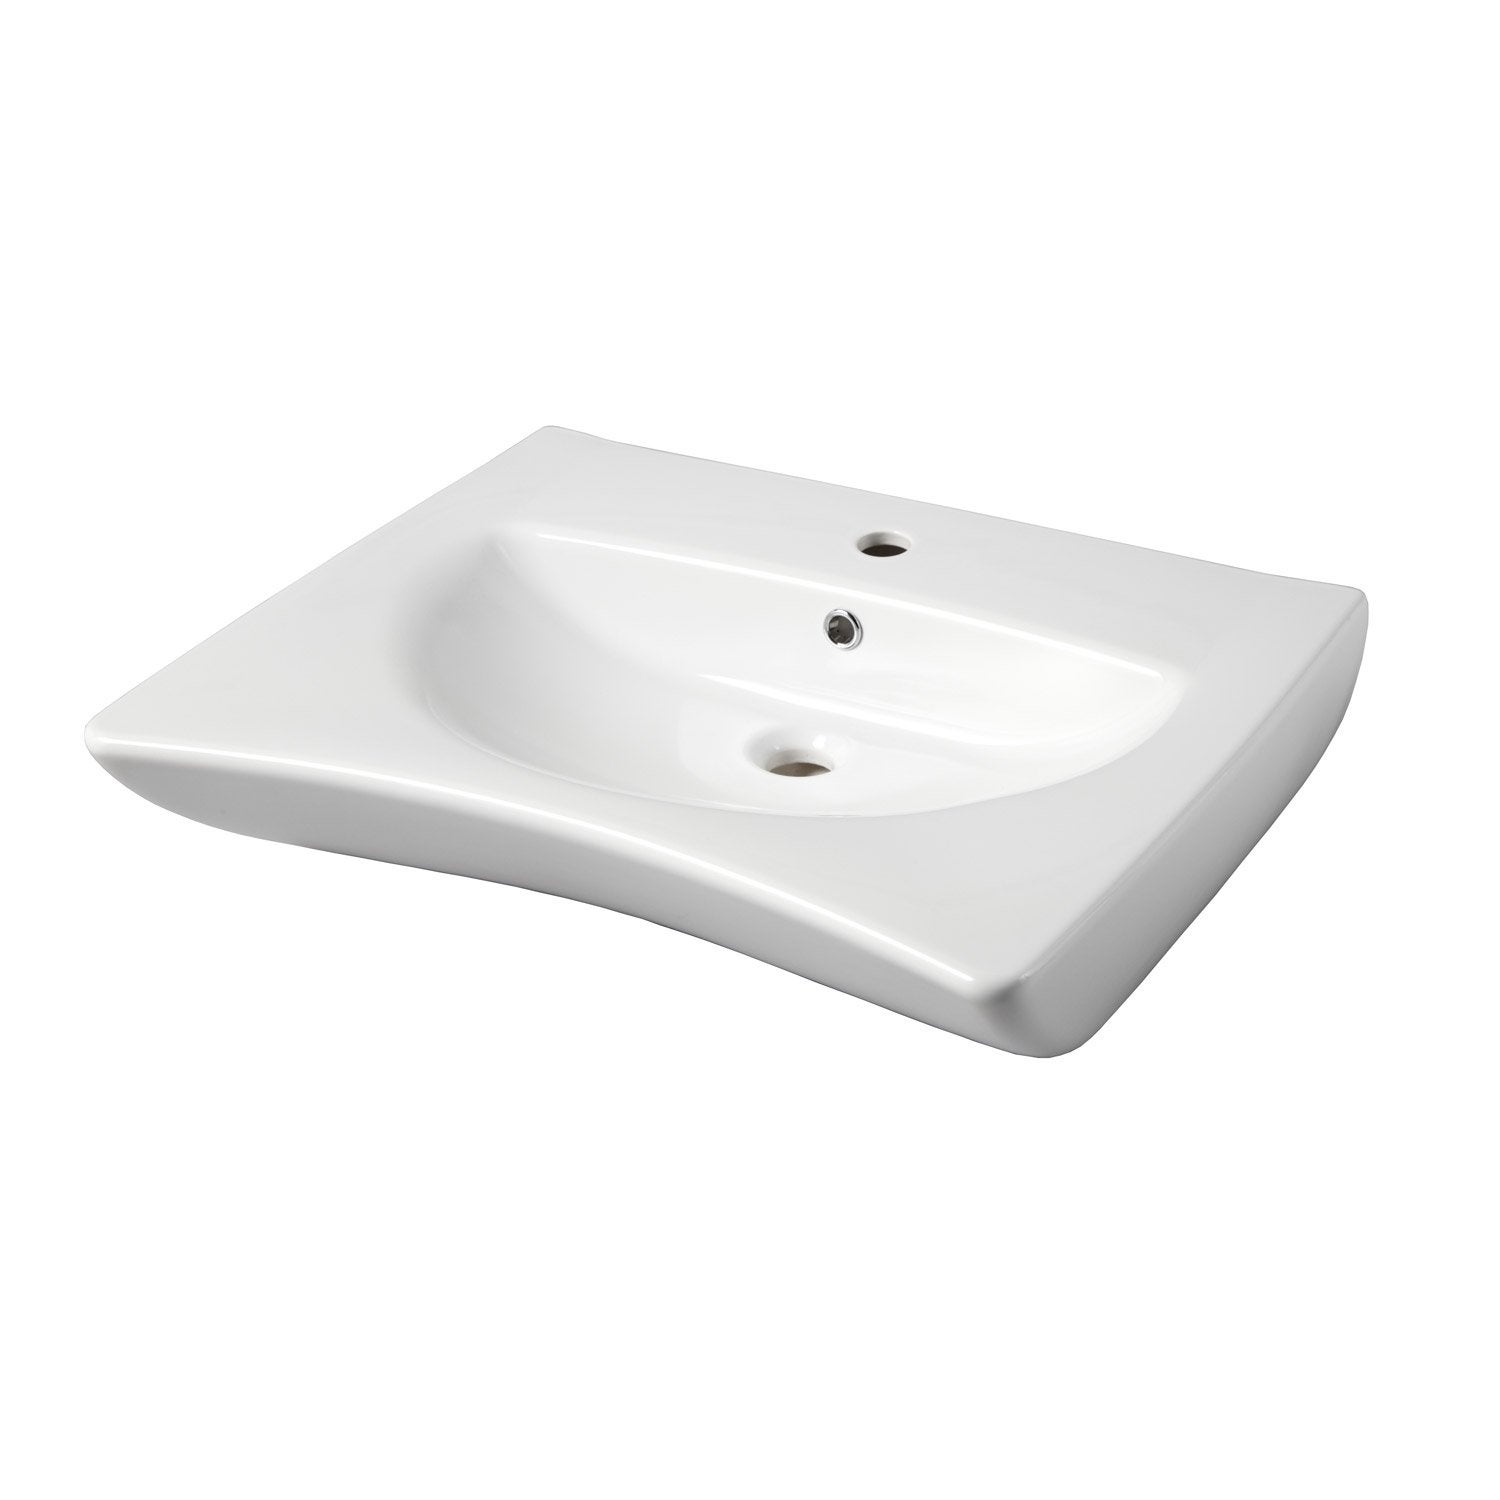 Lavabo en c ramique blanc ergonomic leroy merlin for Lavabo avec colonne leroy merlin